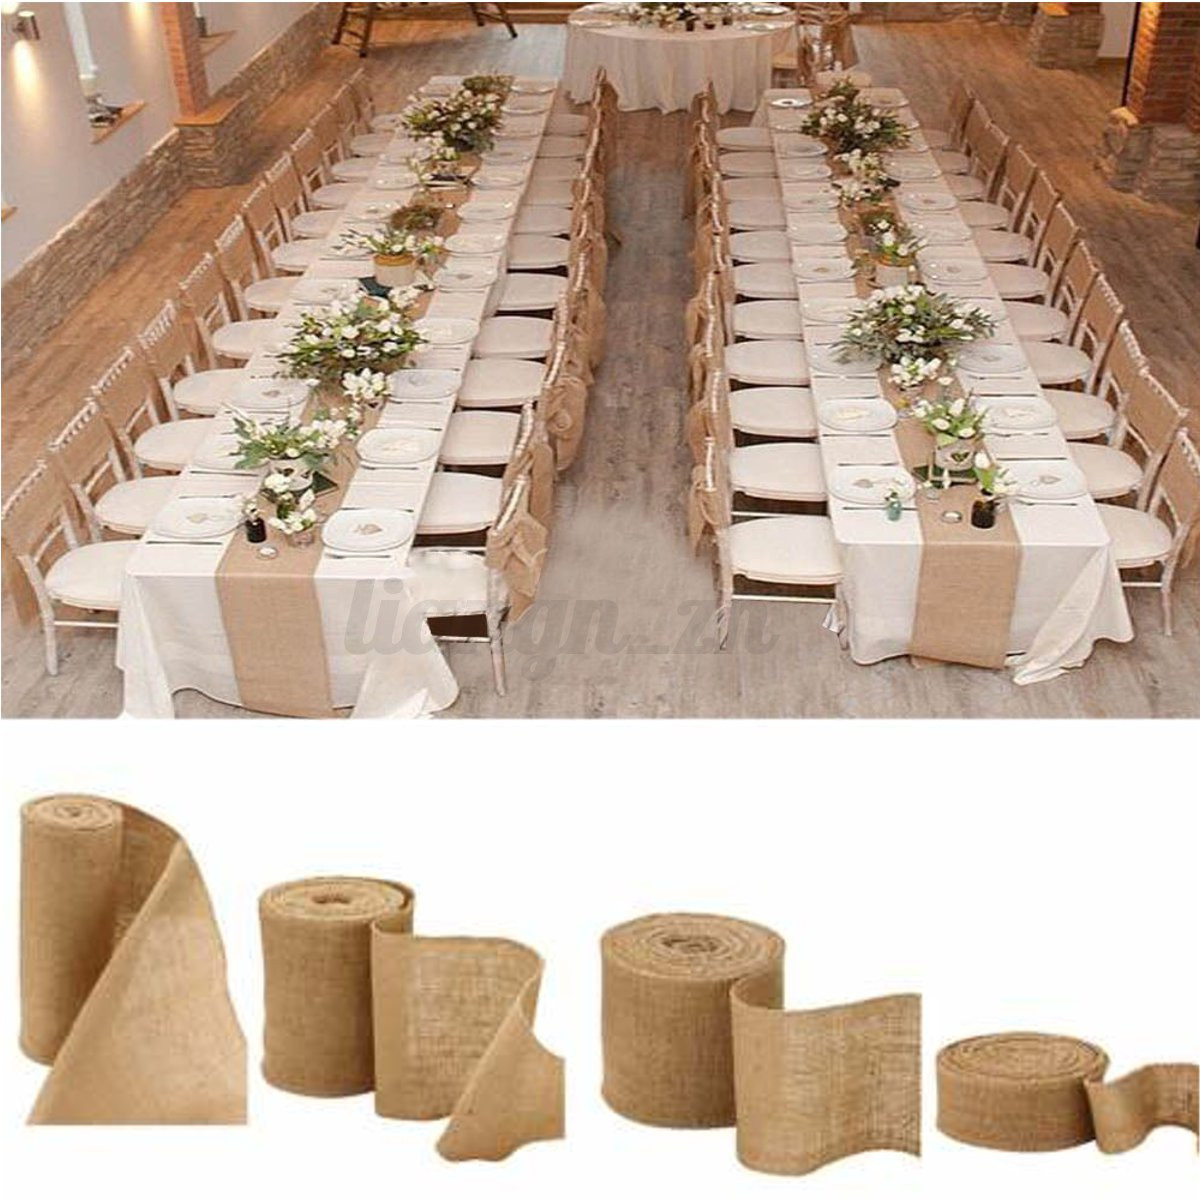 10m rouleau ruban de toile jute hesse bande diy d coration mariage 4 tailles ebay. Black Bedroom Furniture Sets. Home Design Ideas